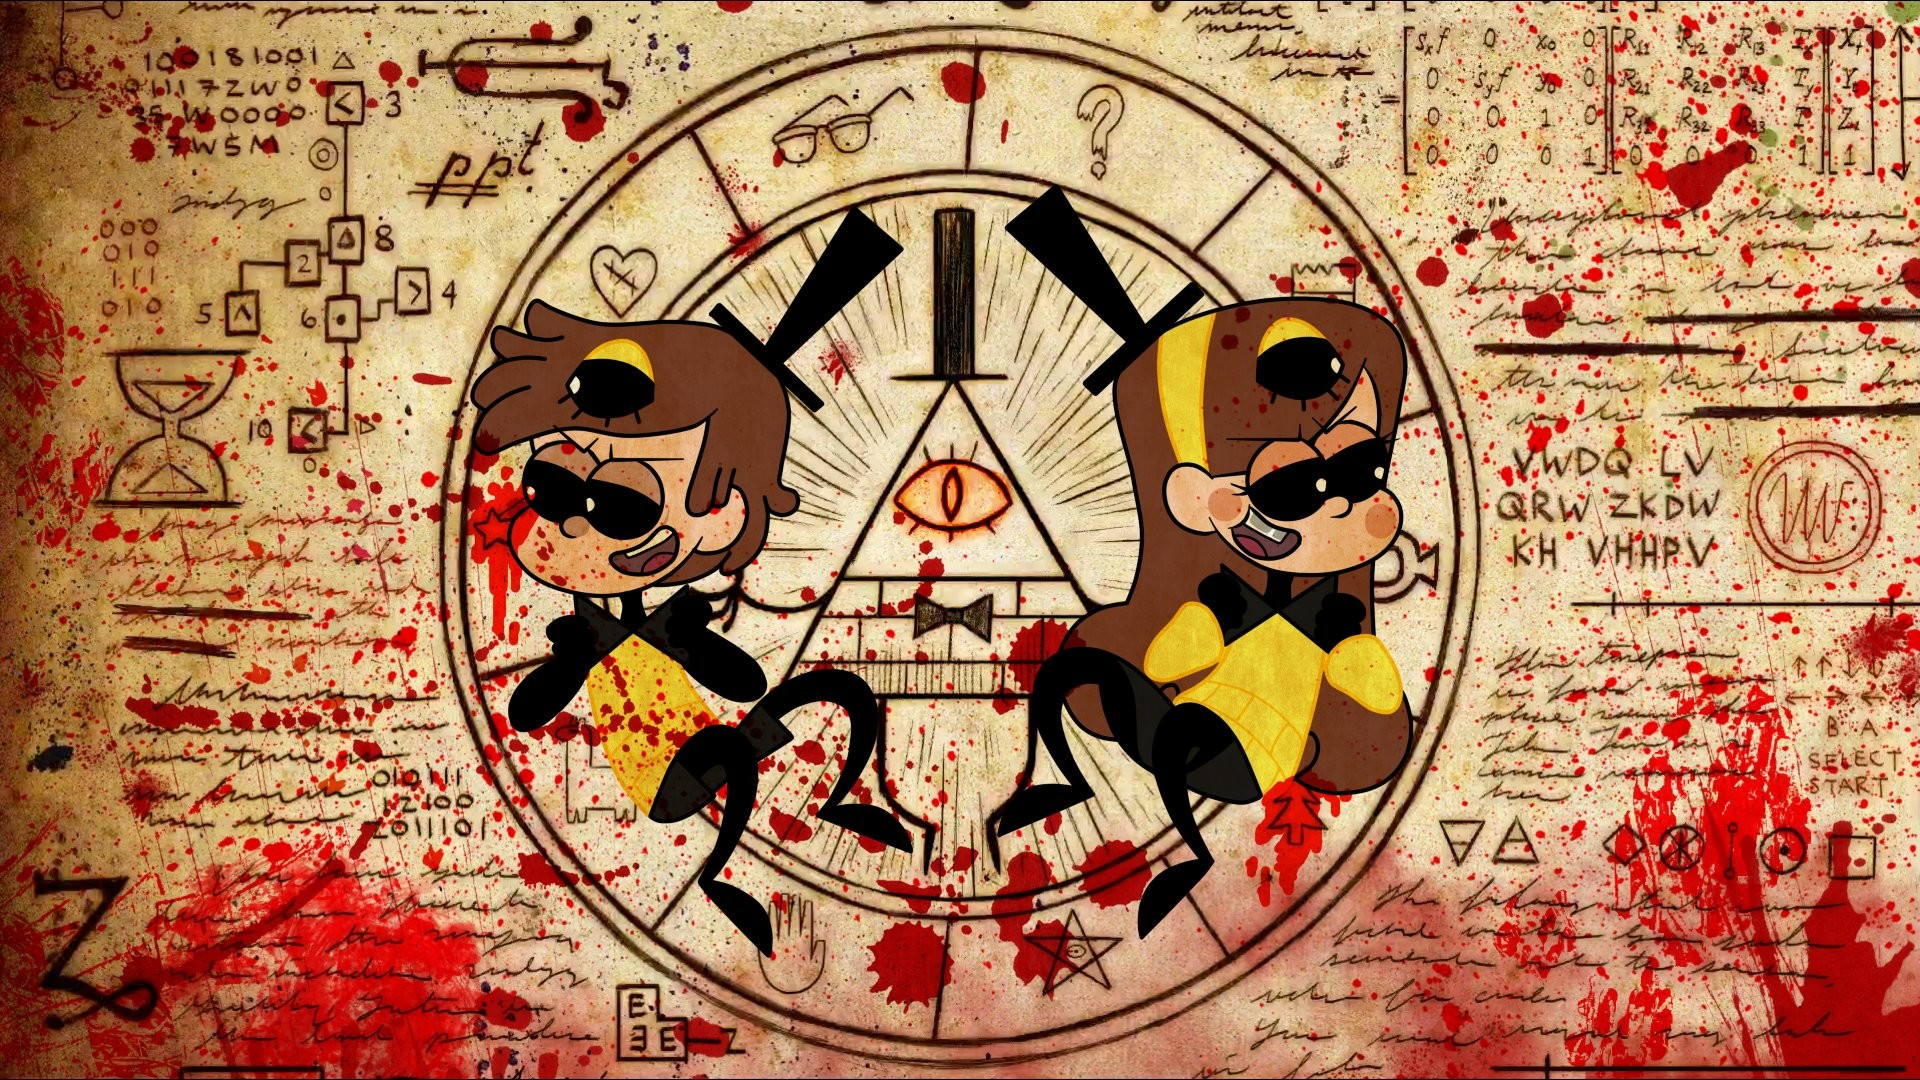 Human Bill Cipher Wallpaper 63 images 1920x1080